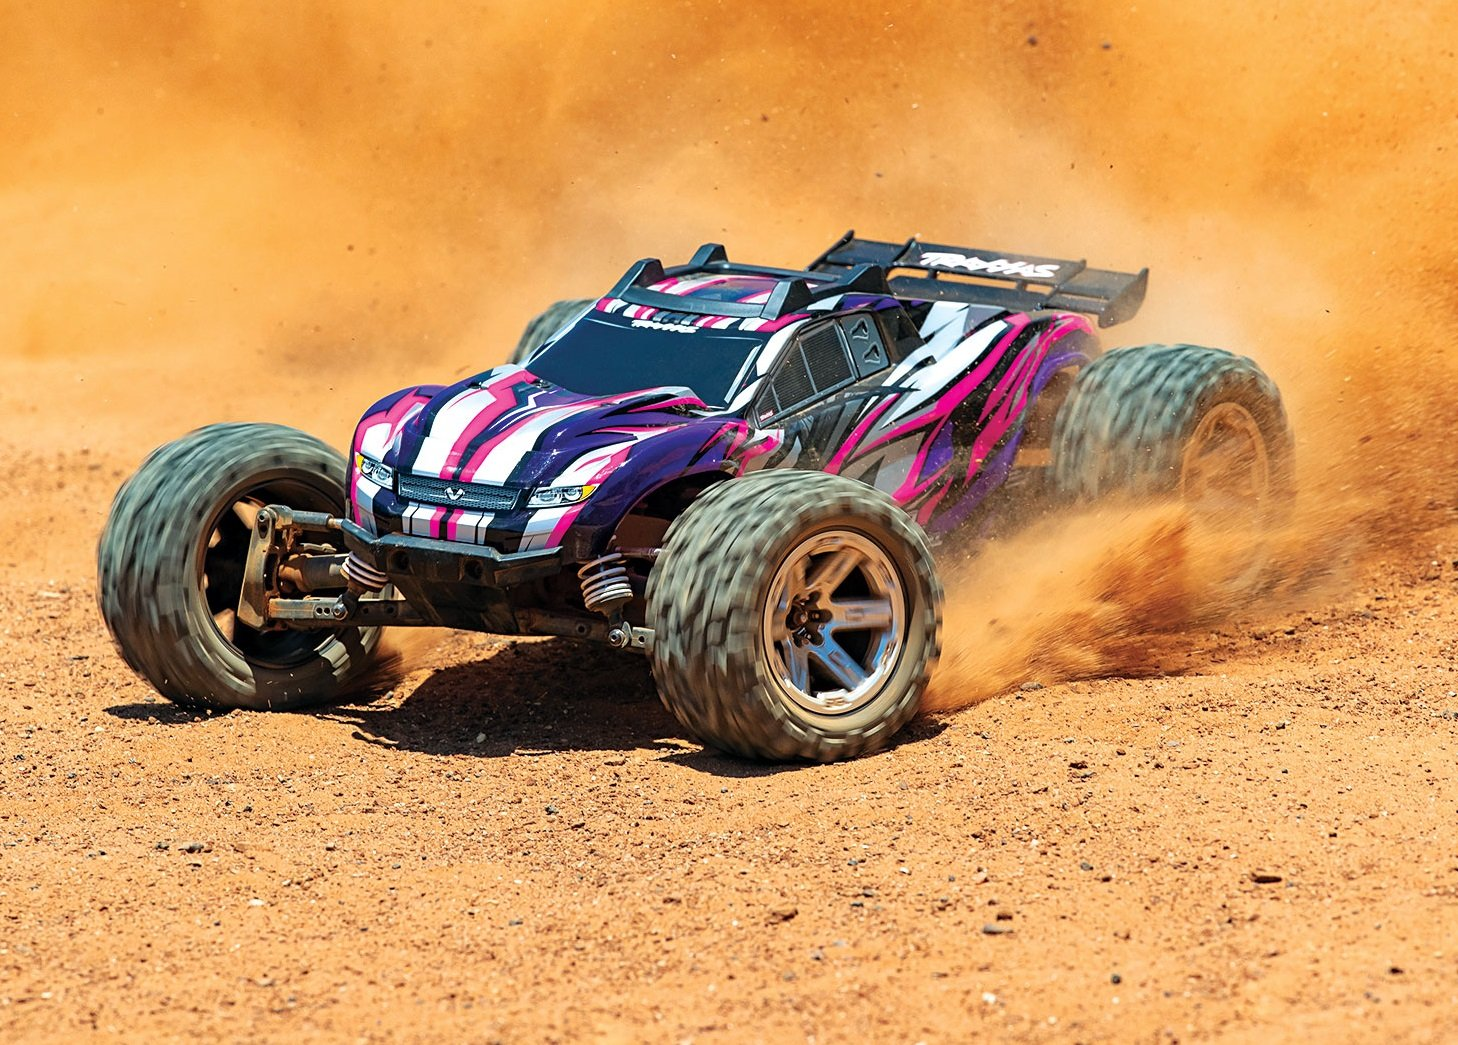 Fandacycle Professional Gear and Apparel in Columbia MO 67076-4-Rustler-4x4-VXL-Action-Dirt-PINK-5188